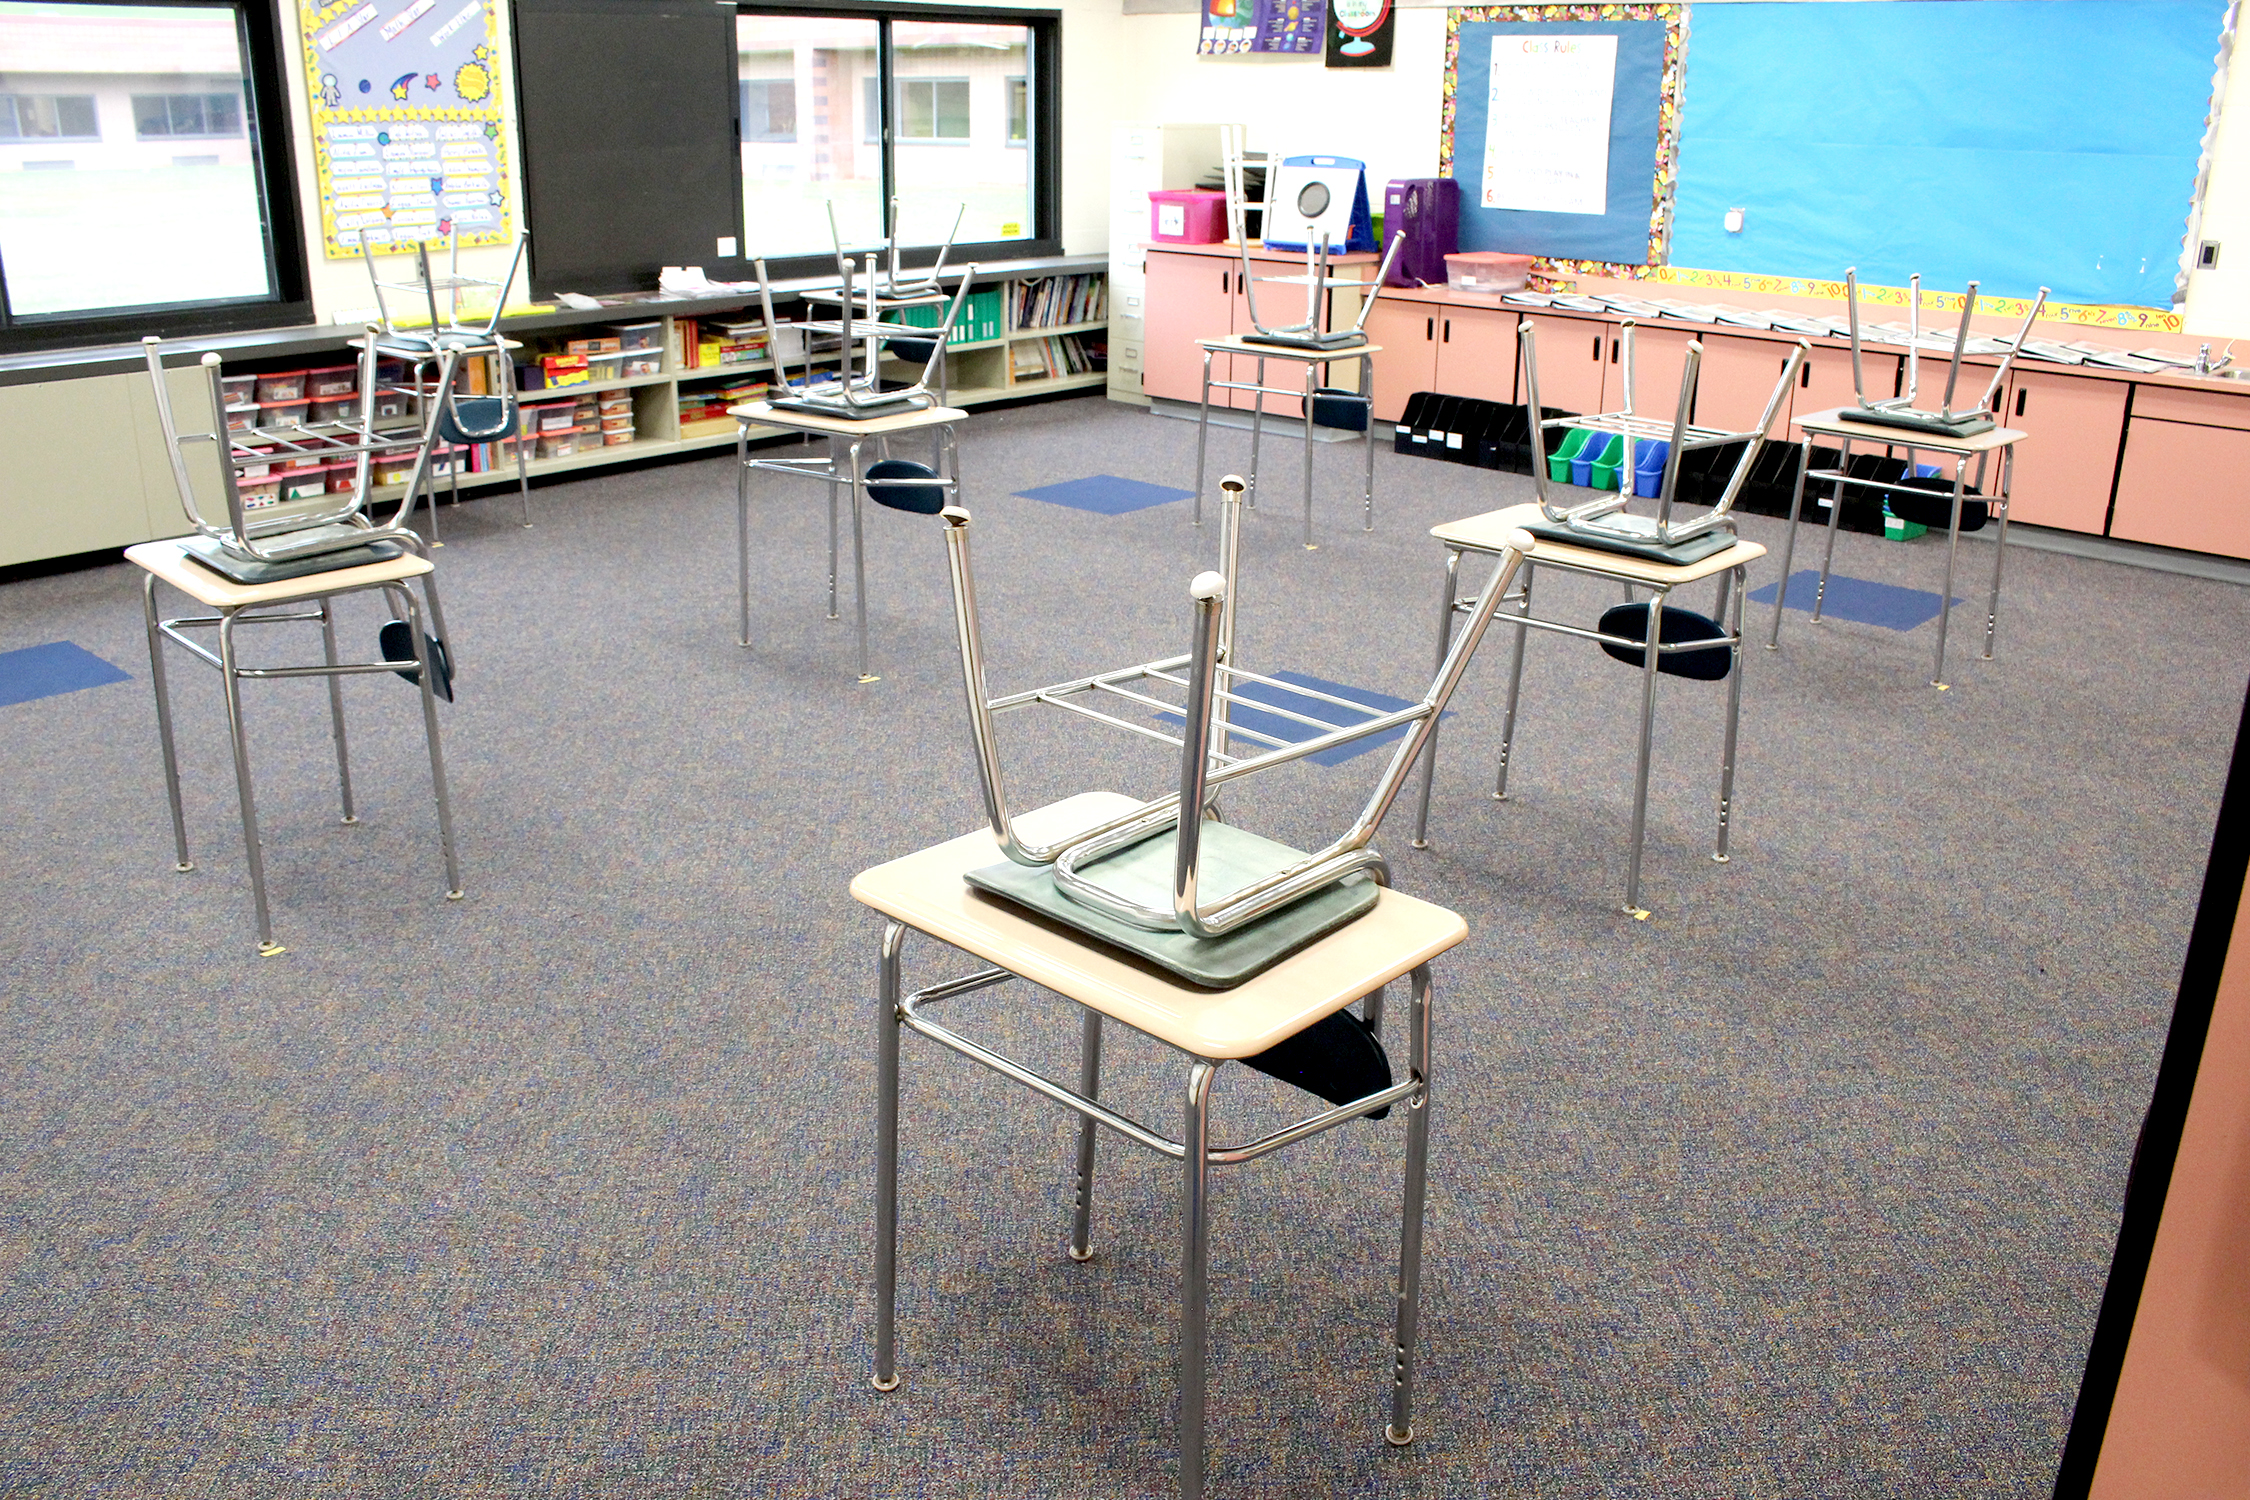 empty desks with chairs (9/2020)